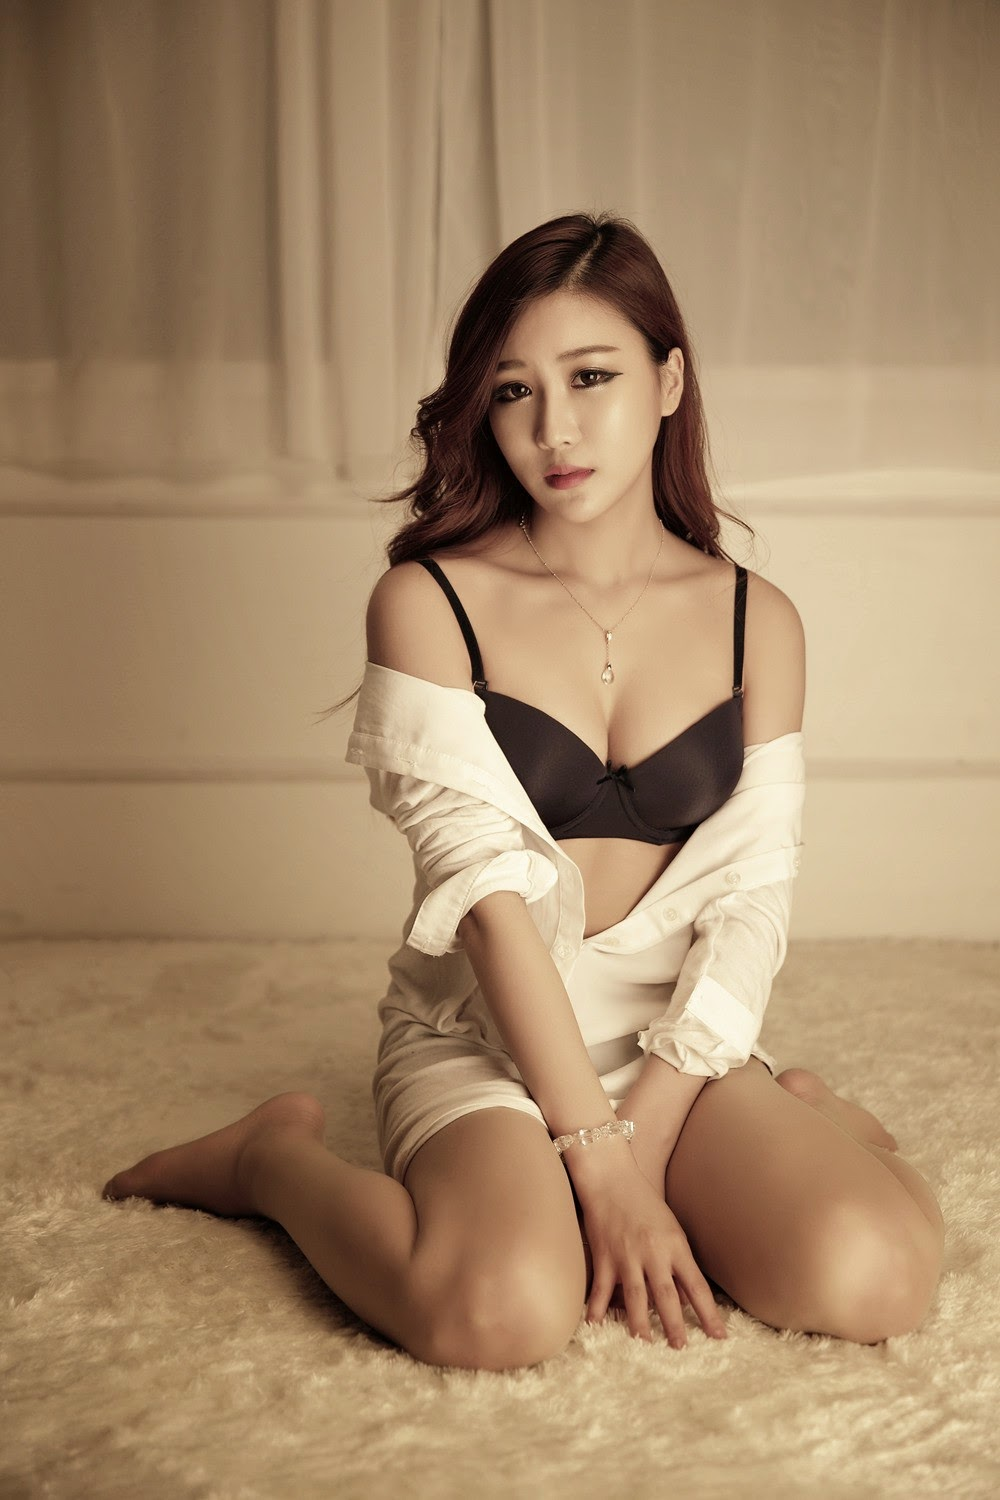 Yoon Chae Won - Sexy in Lingerie